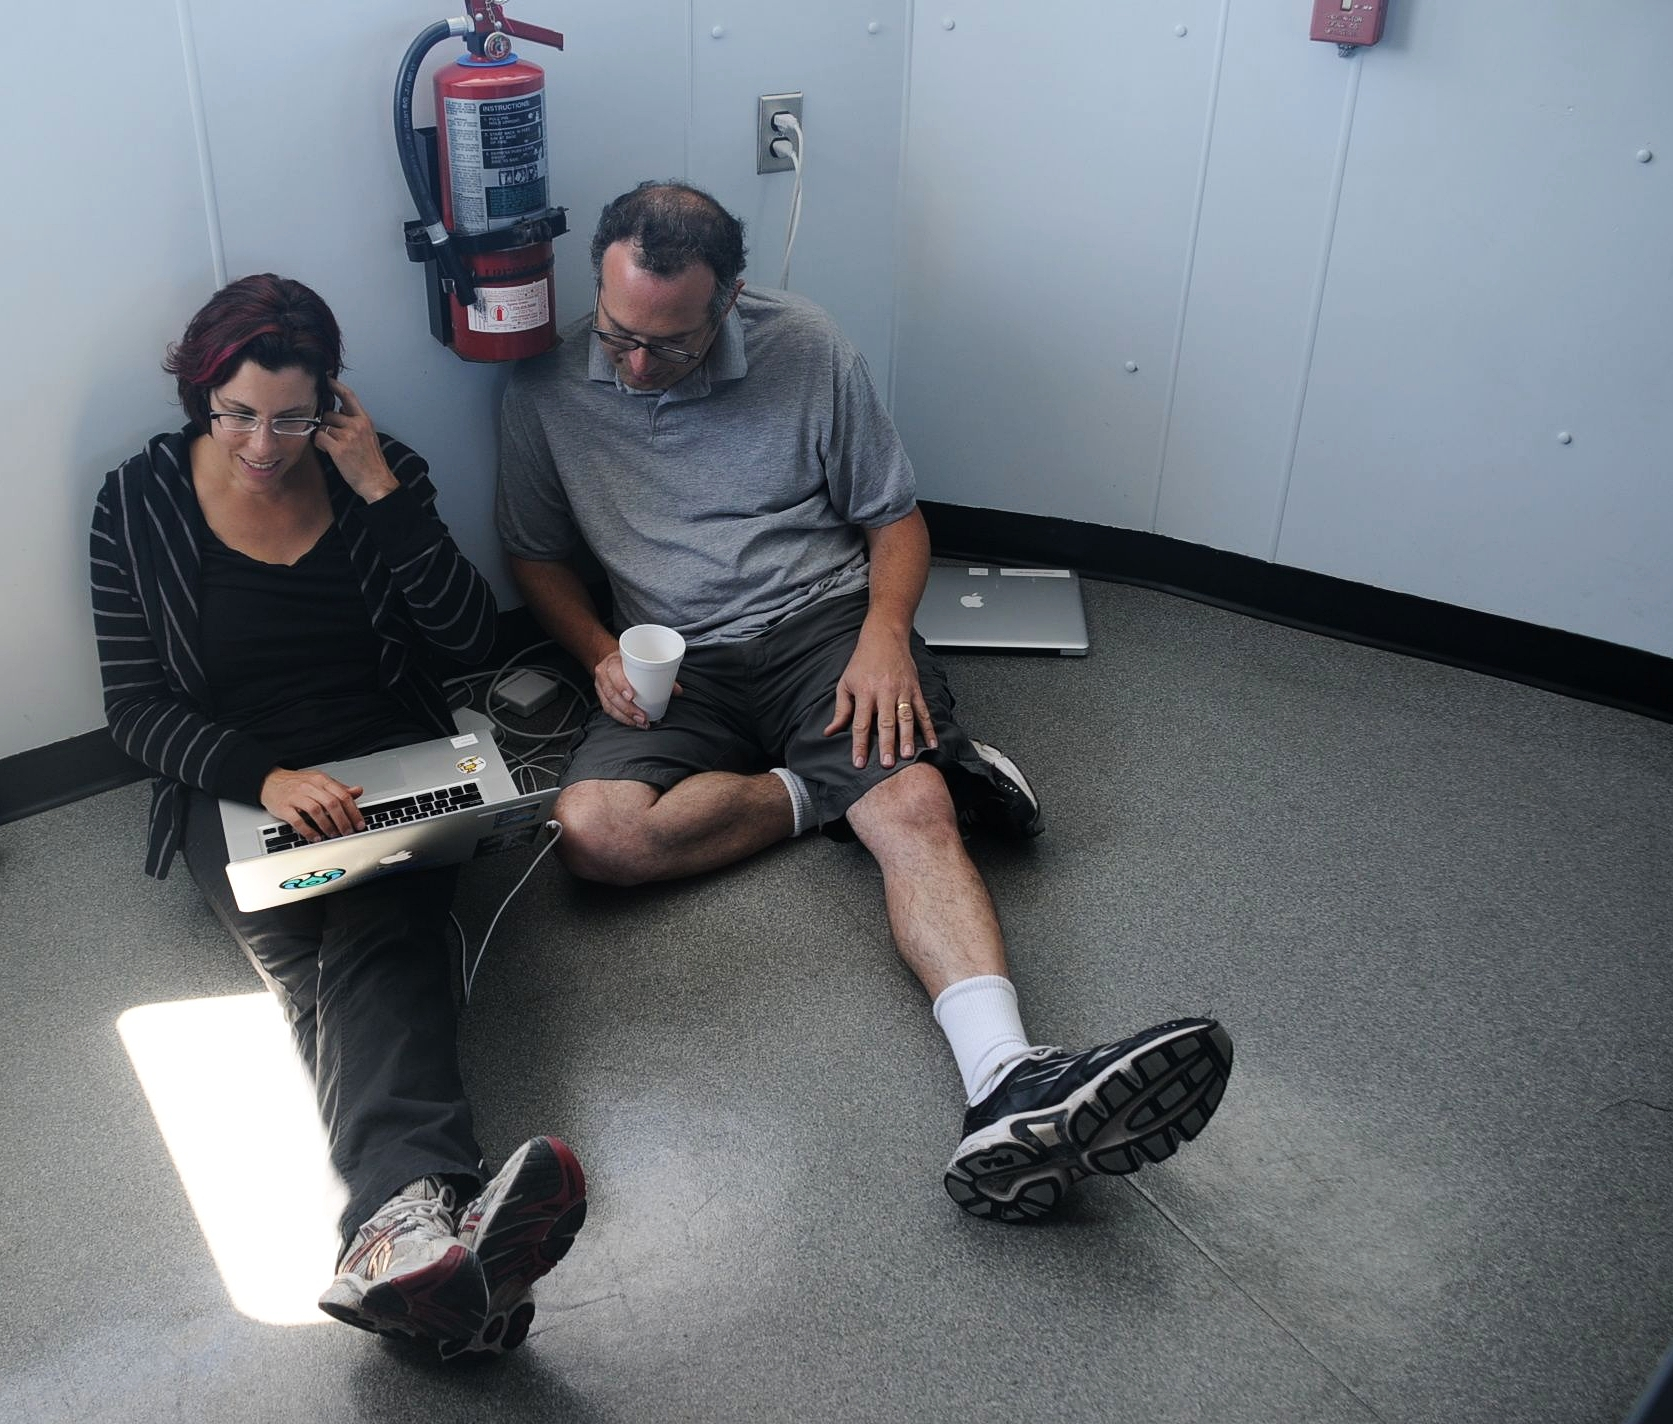 Development dedication on board the Liberty Star during a NEEMO mission.  Chairs are for the weak!